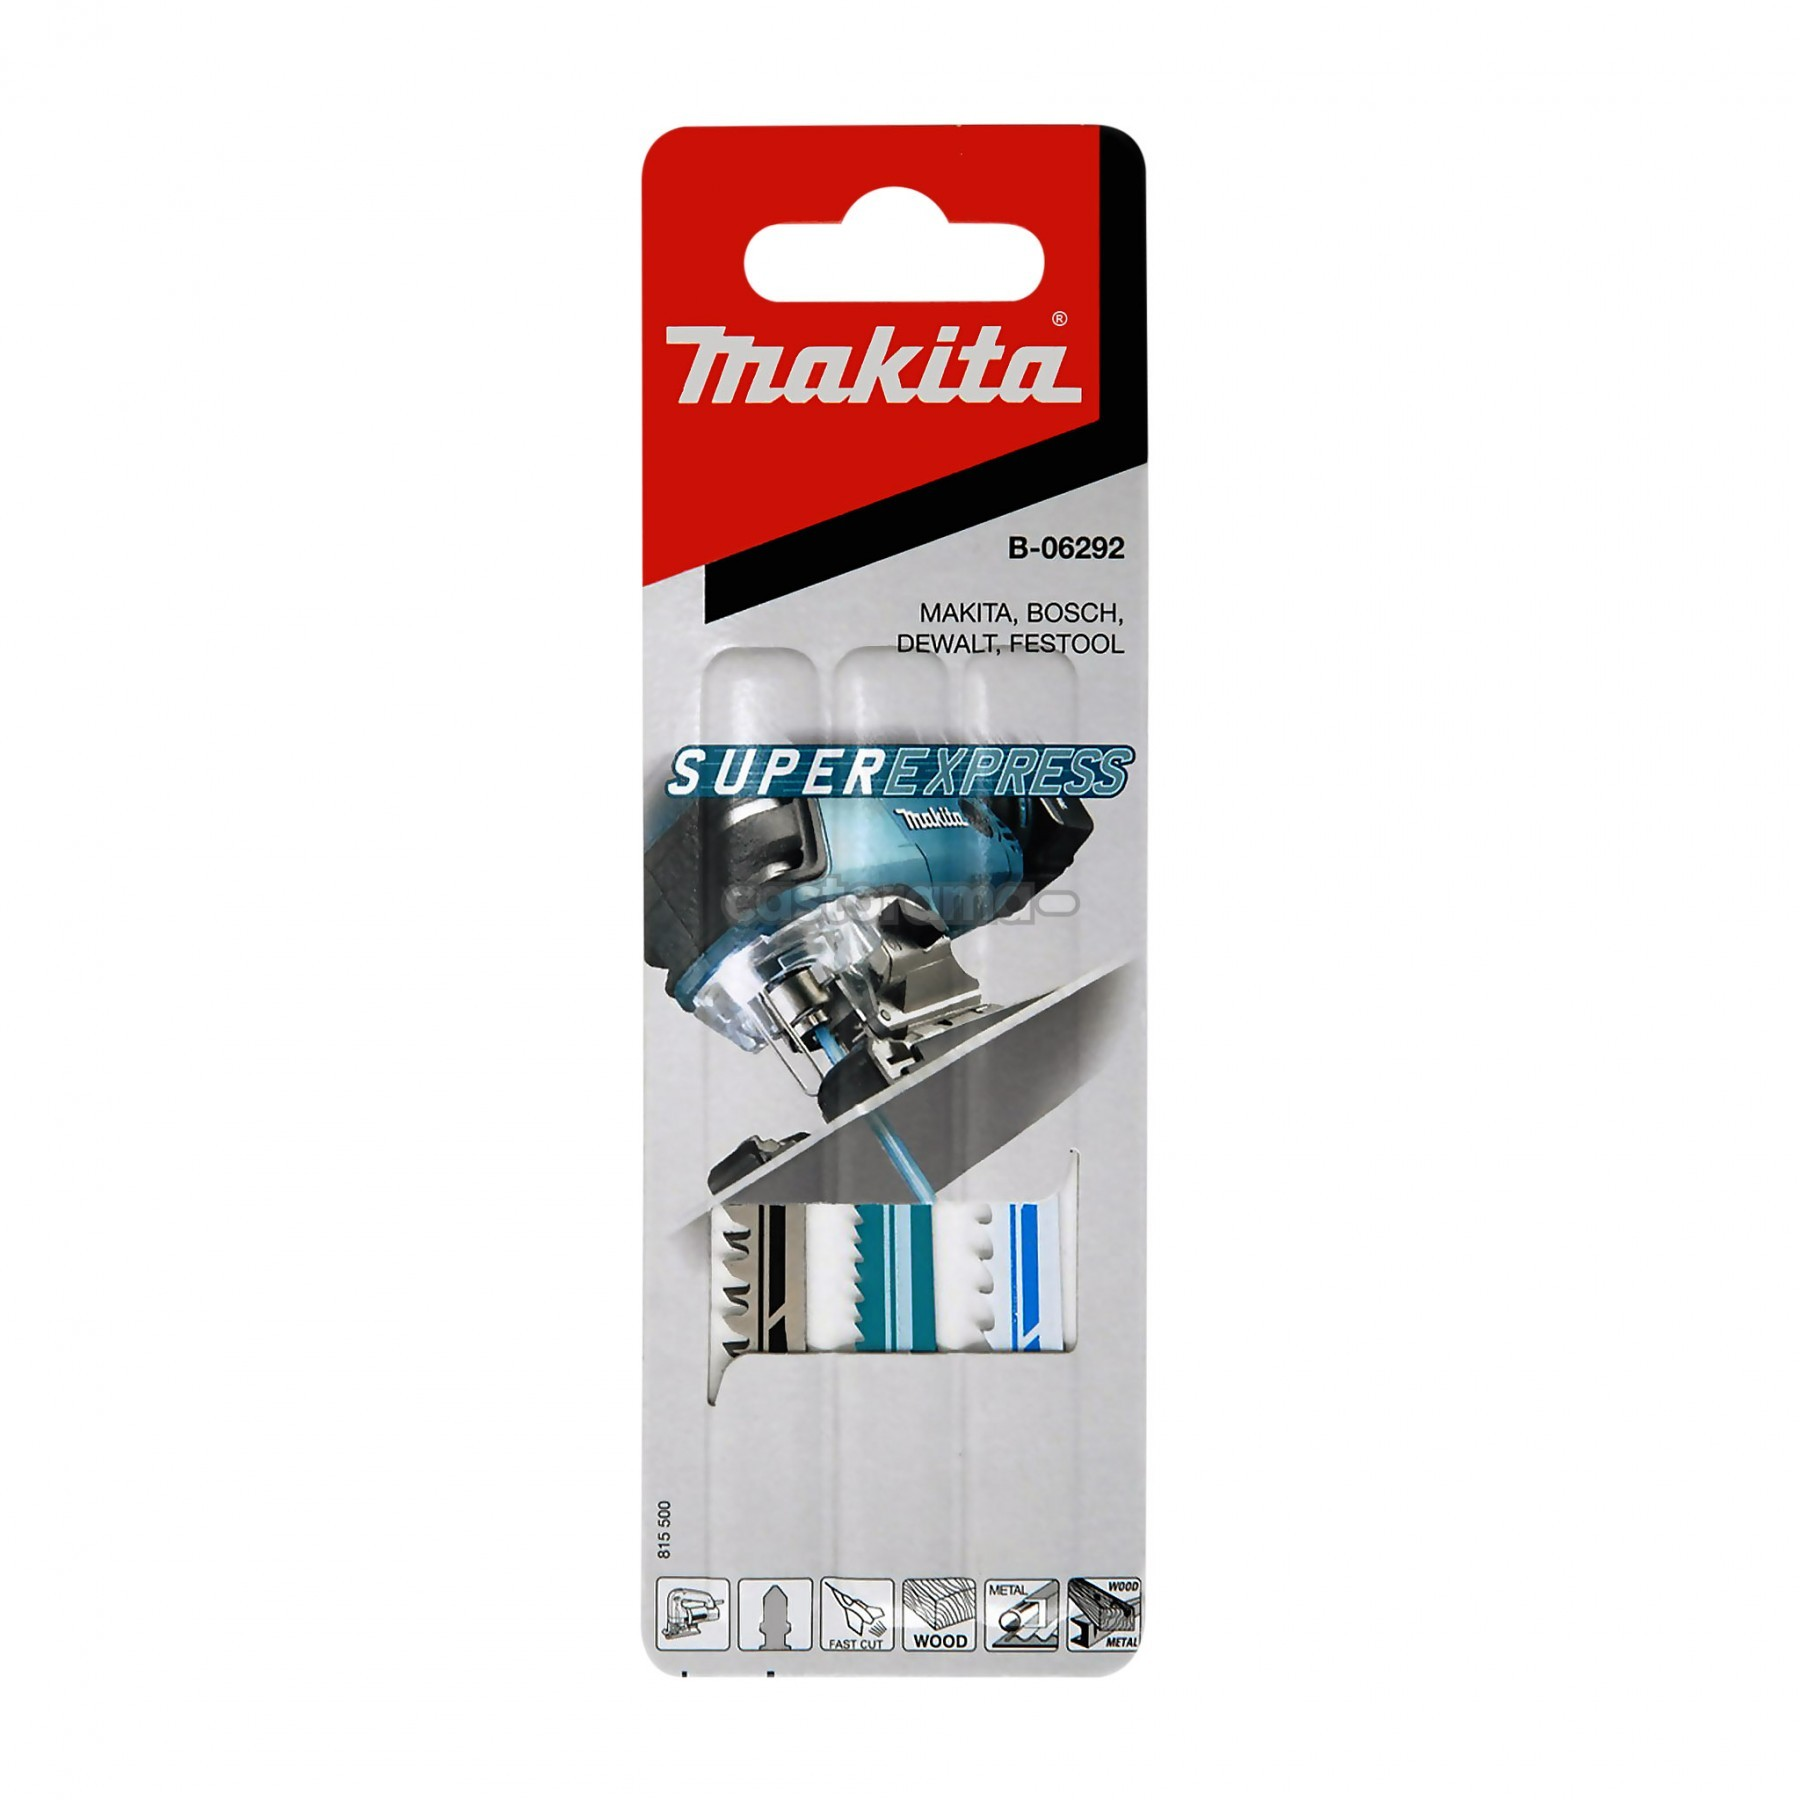 Makita B-06292 Super Express Jigsaw Blade Set x3 Blades for Wood & Metal